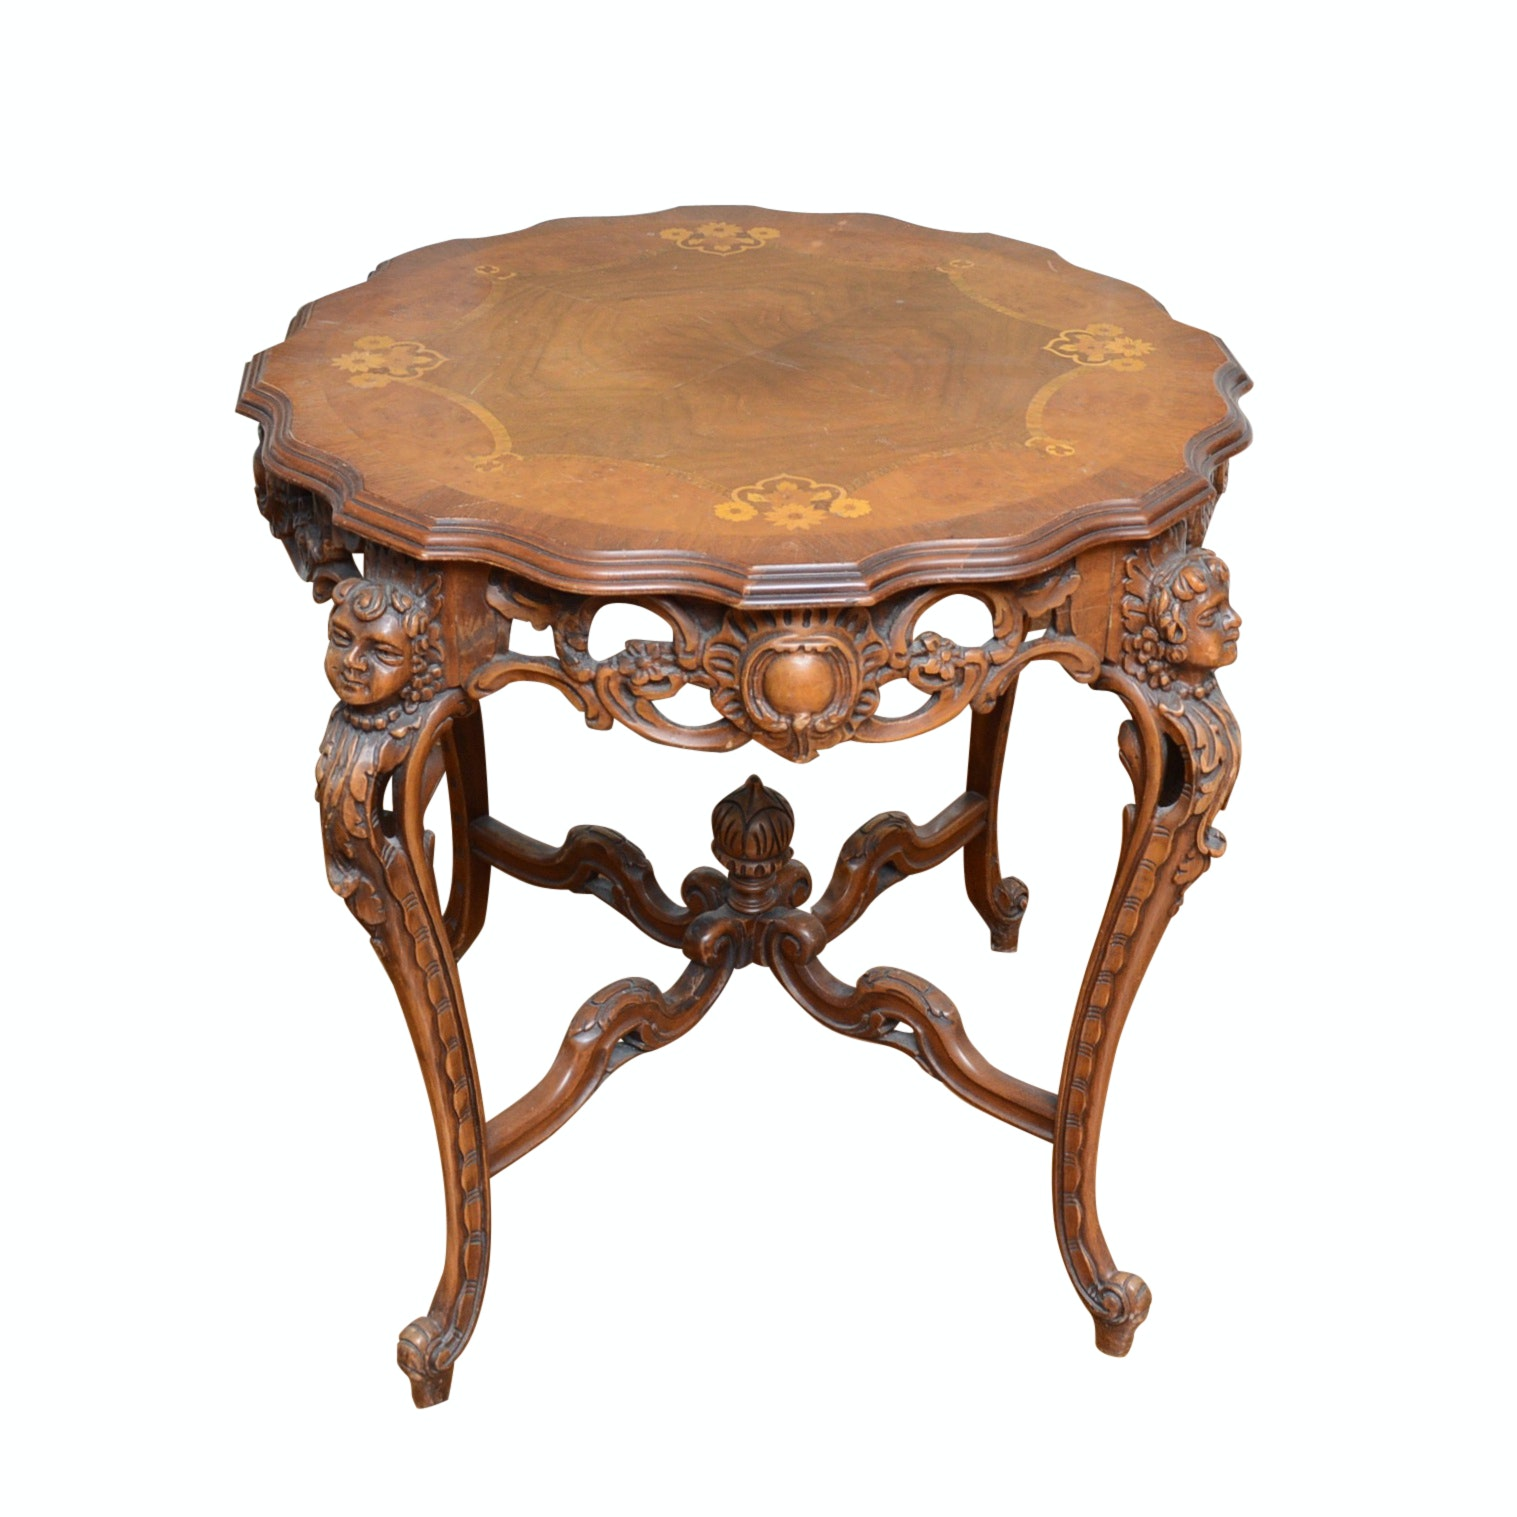 Neoclassical Style Table with Inlay Accents